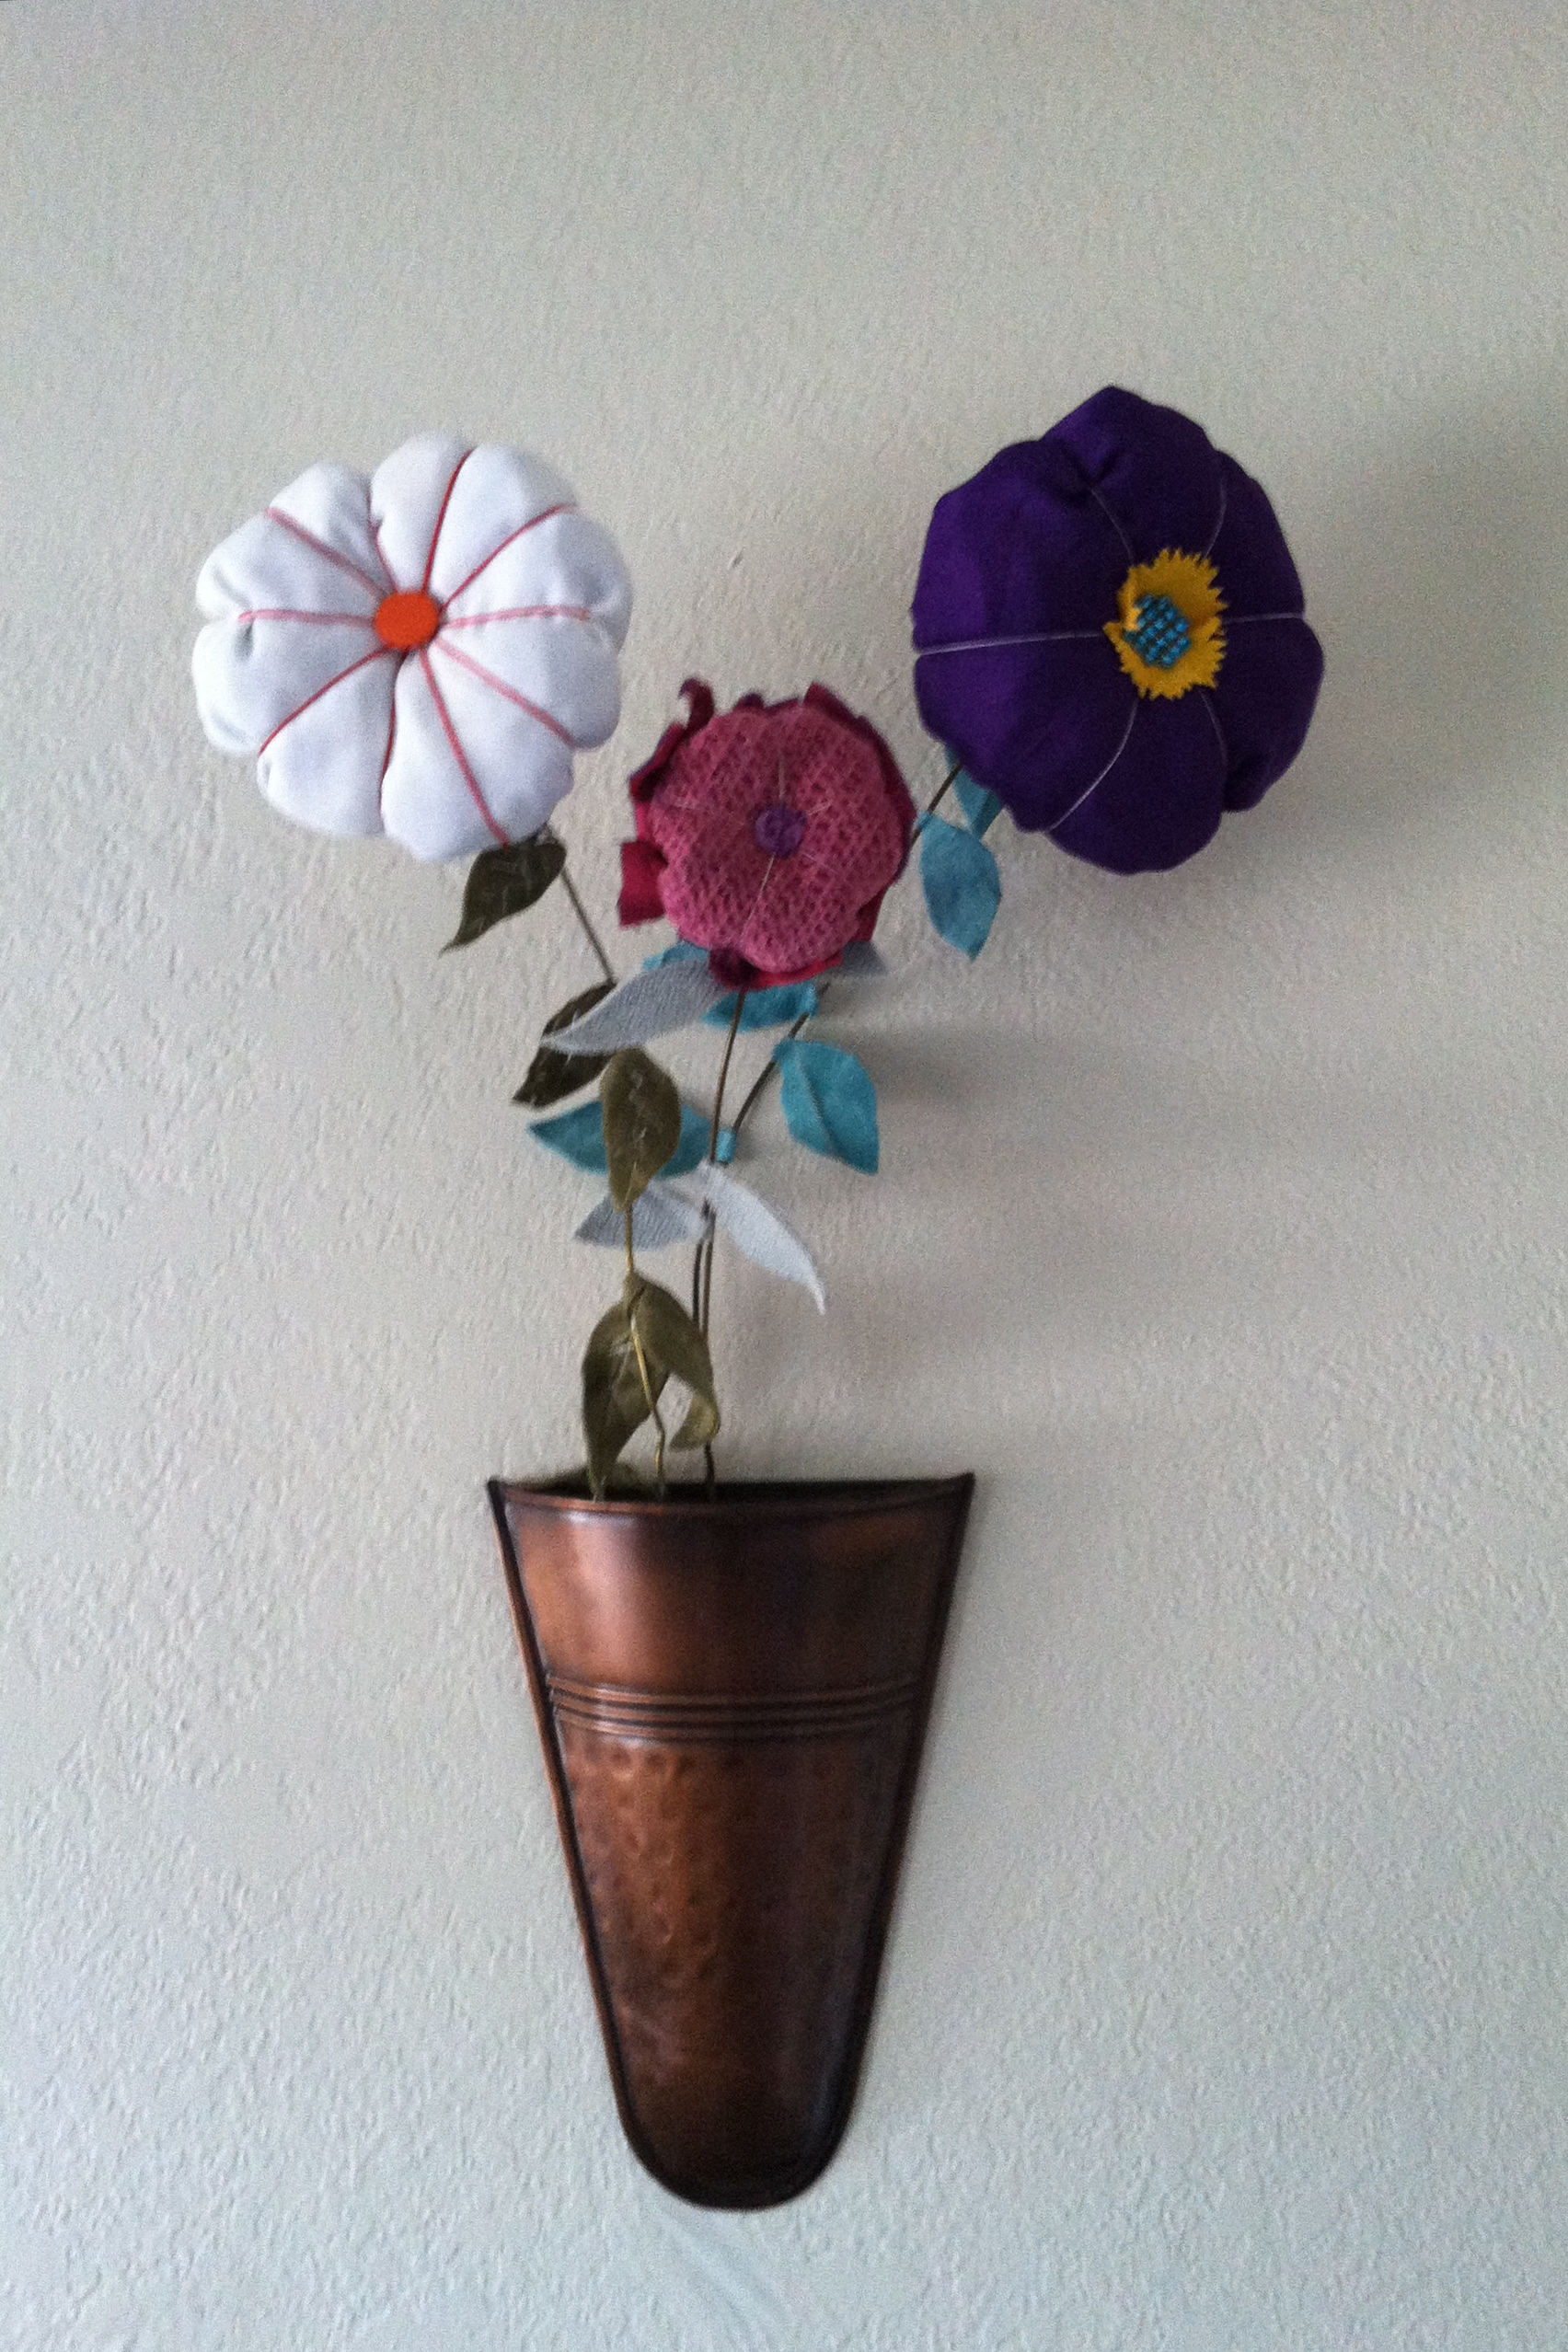 How to make fabric flowers sas fabrics superstore fabric flowers like these they are very easy to make look great and are so sassy izmirmasajfo